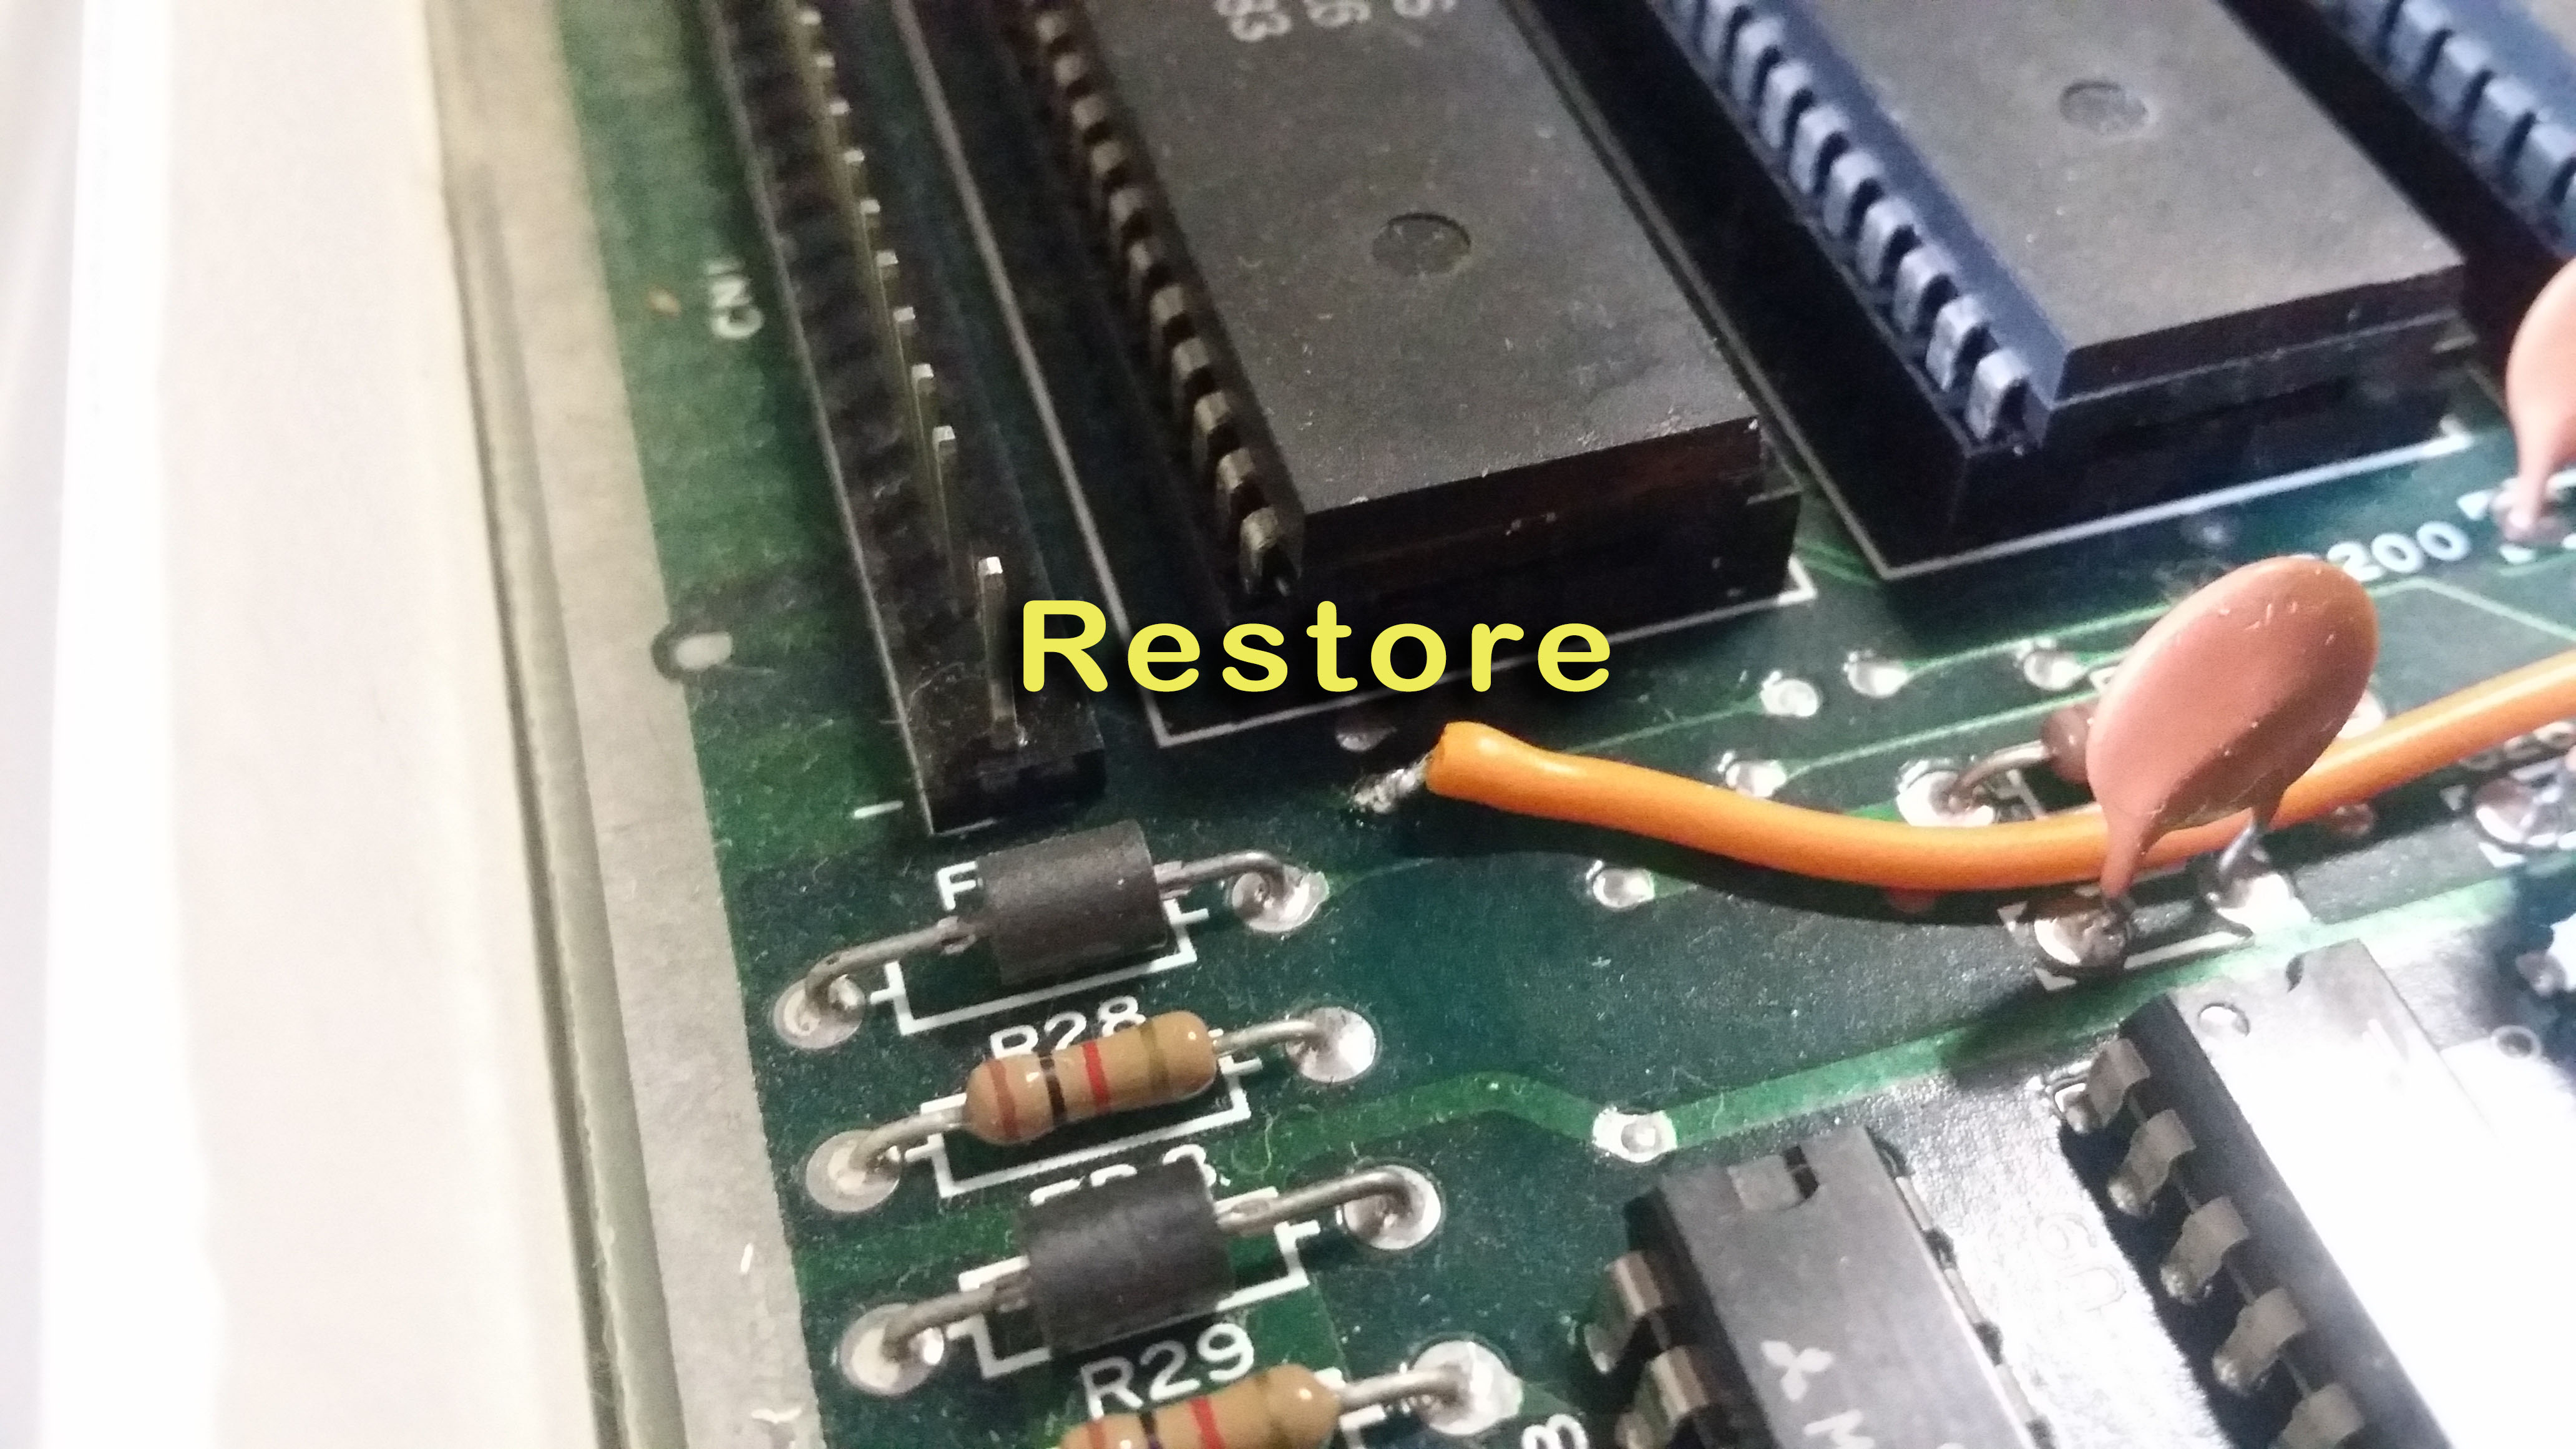 Switchless JiffyDos replacement rom for Commodore 64